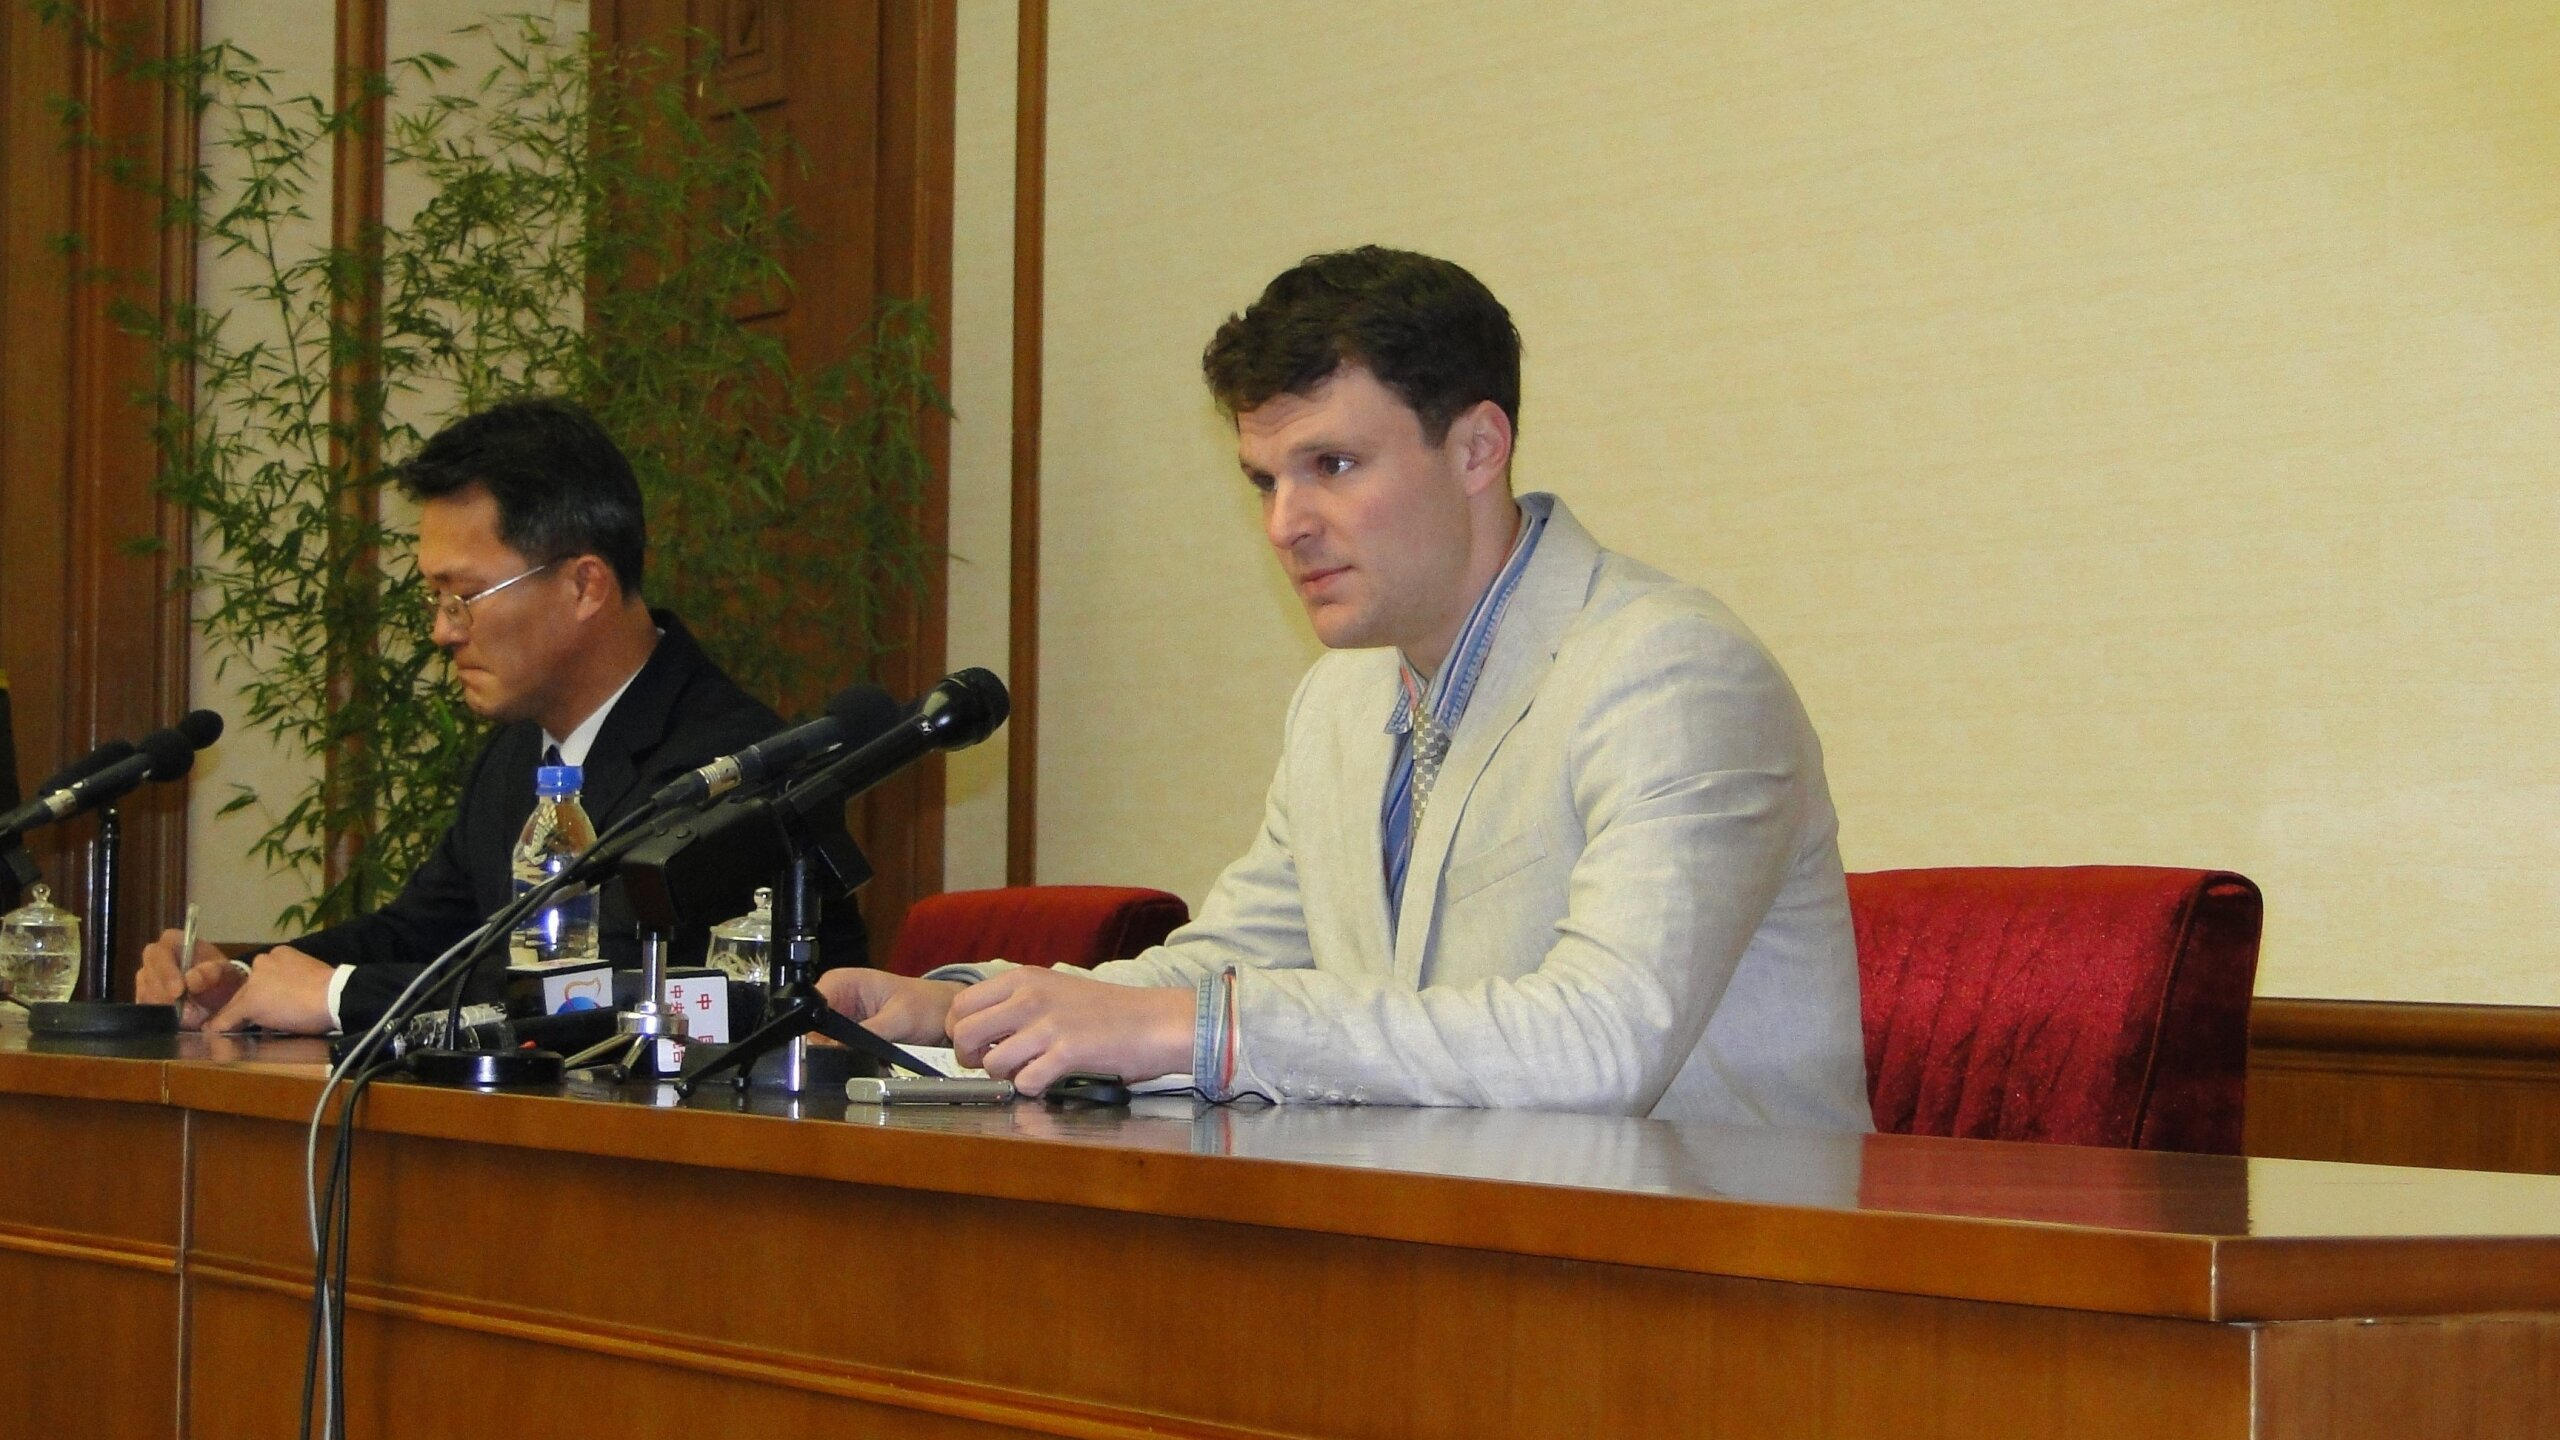 Photos: UVa student Otto Warmbier dies days after being released from North Koreancustody